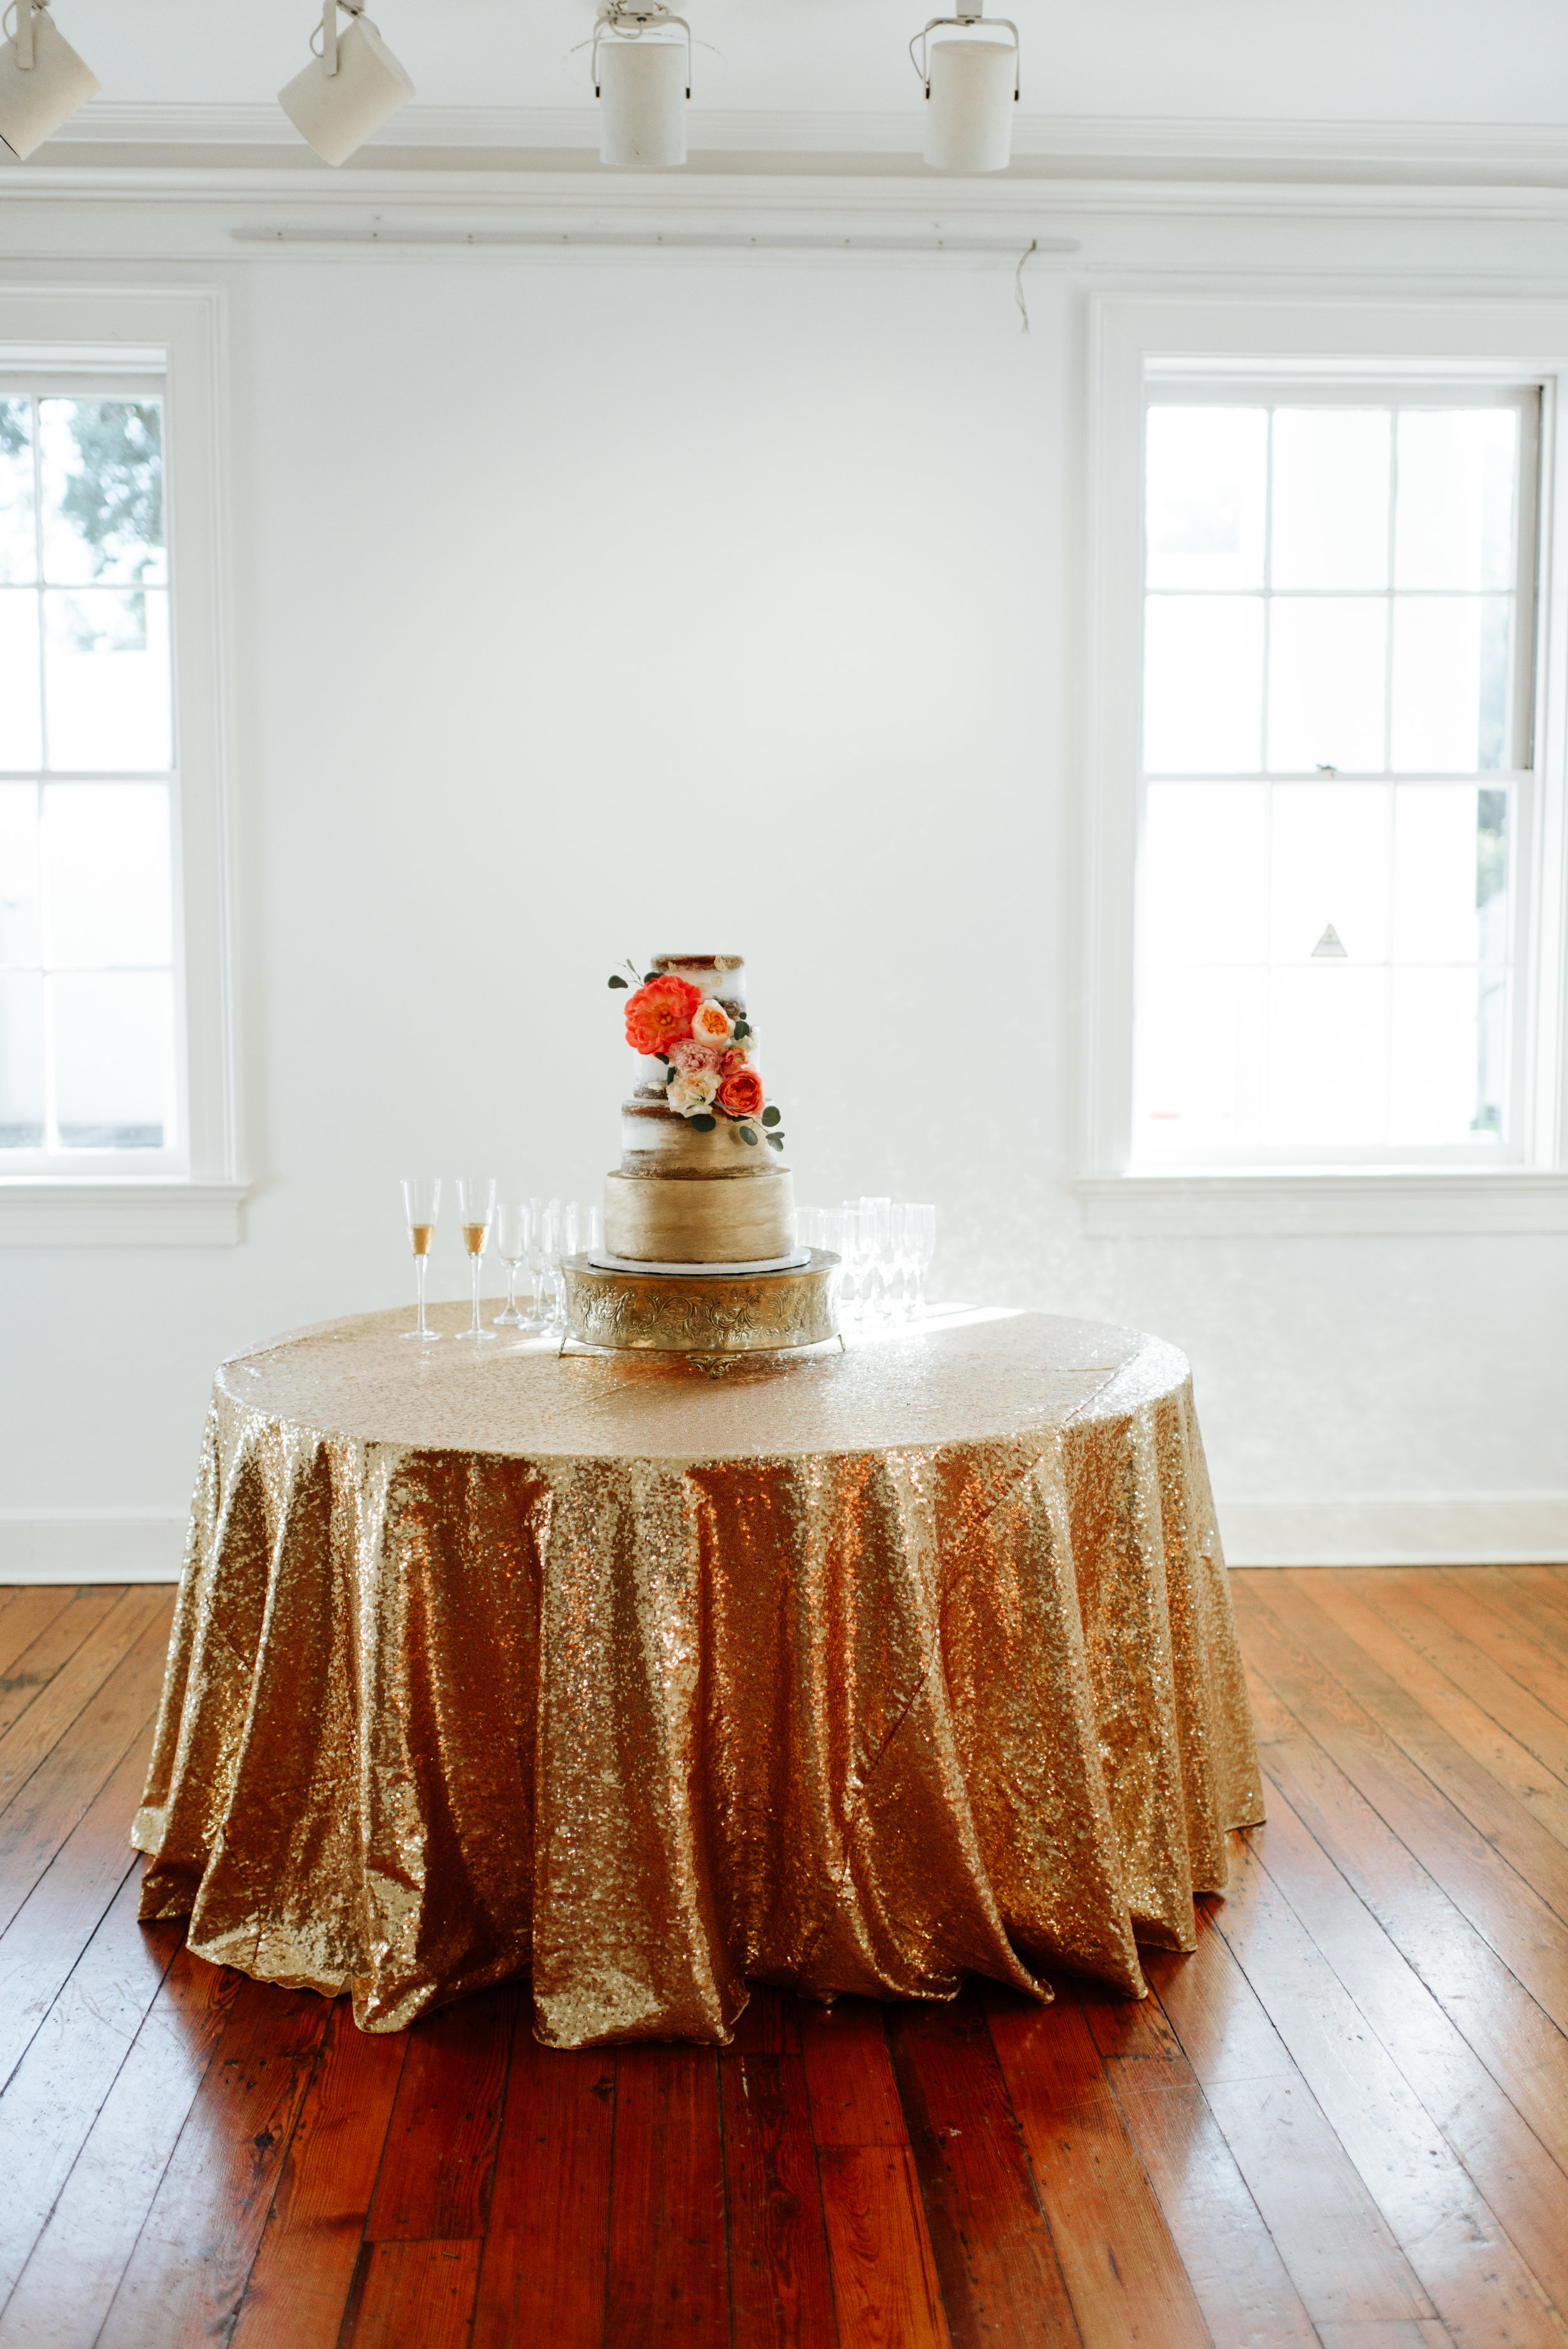 Southern Fete, Southern Wedding, Wedding Cake, Bride's Cake, Sky's the Limit Cakes, Daisy Cakes, Hannah Mulligan Photography